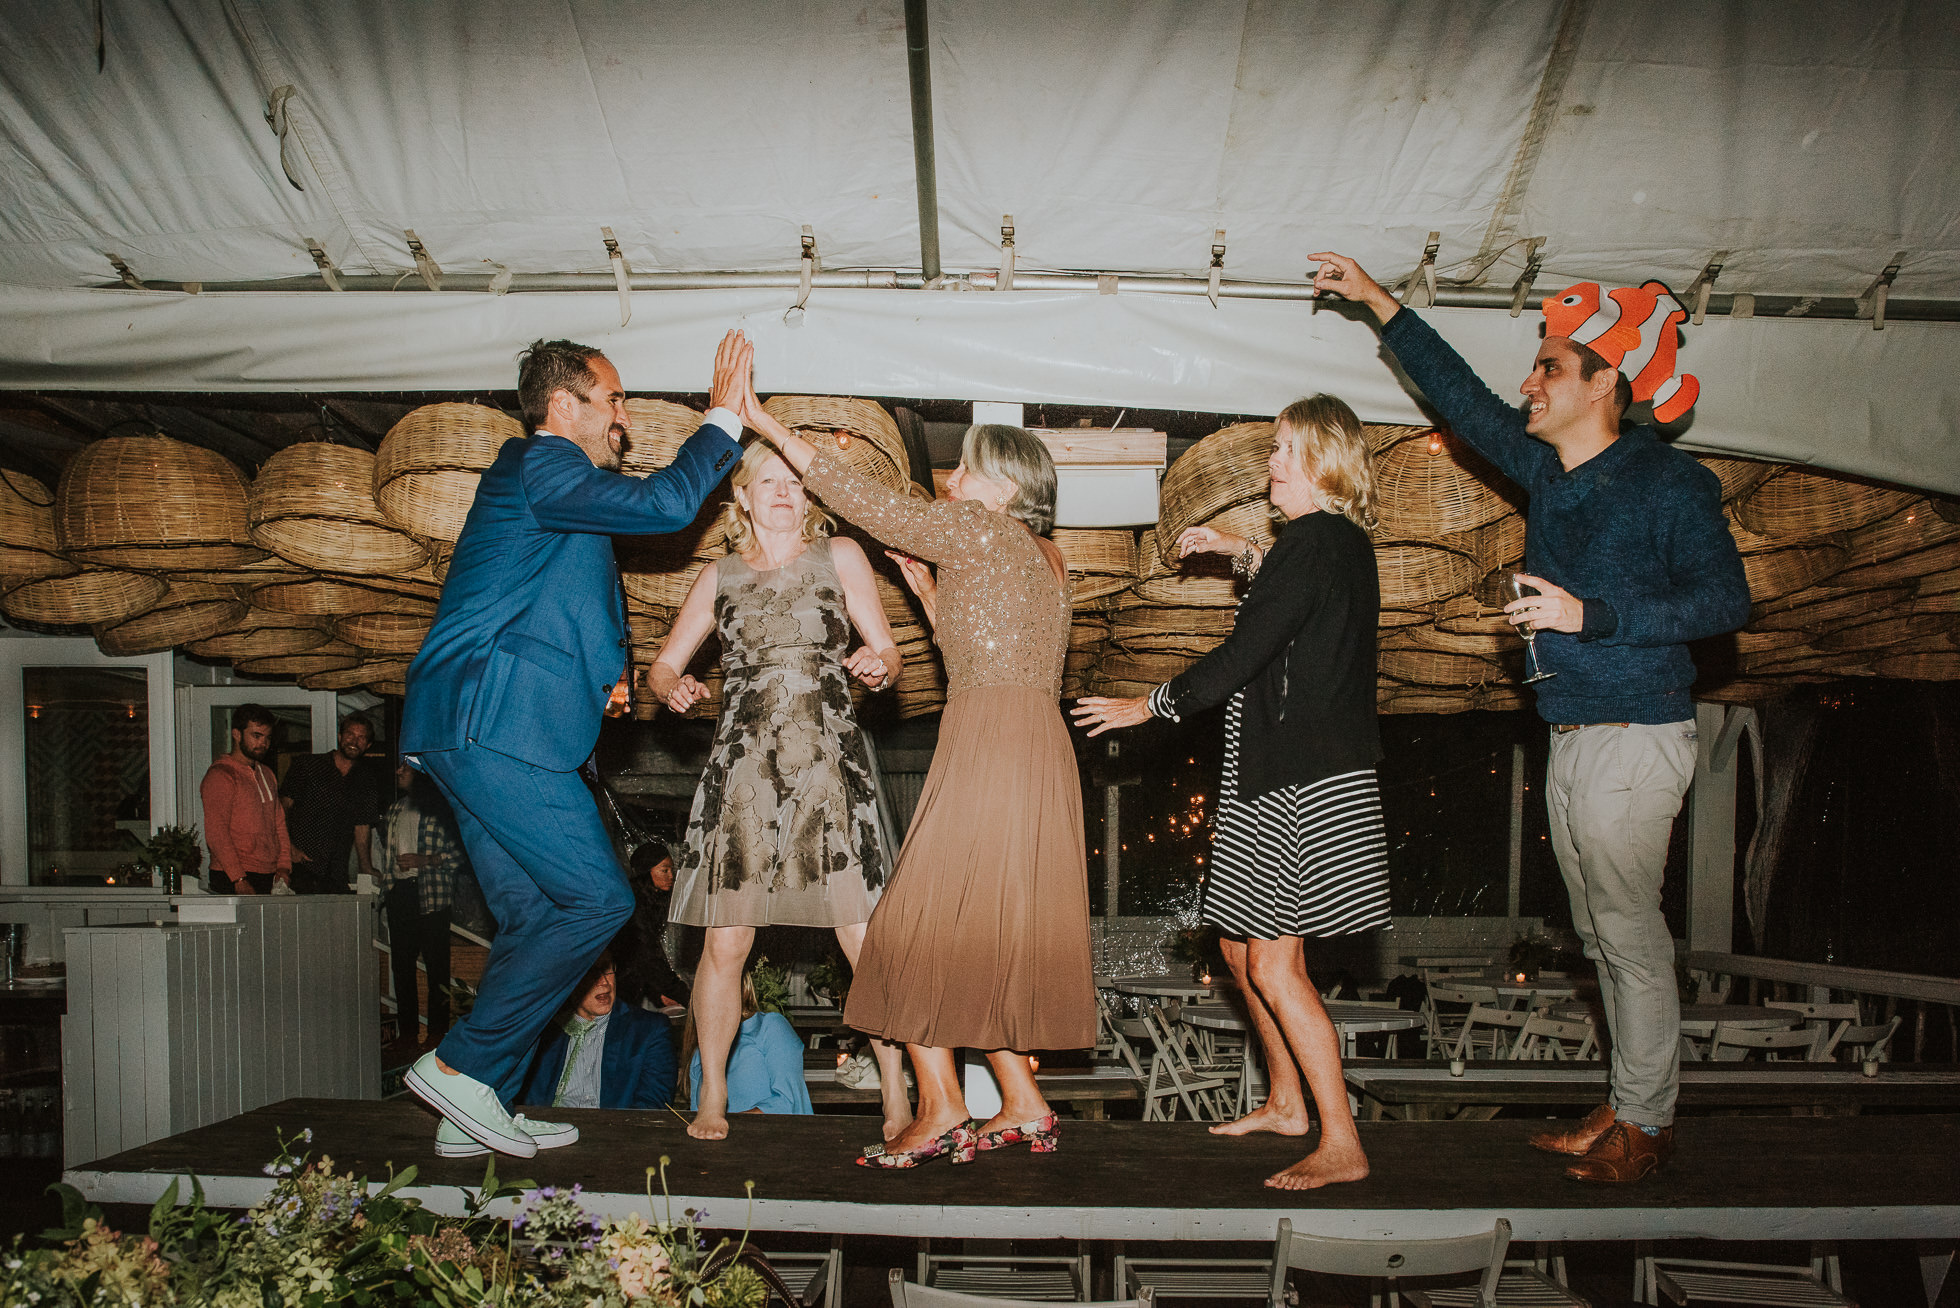 guests dancing on table at reception Montauk wedding photographed by Traverse the Tides